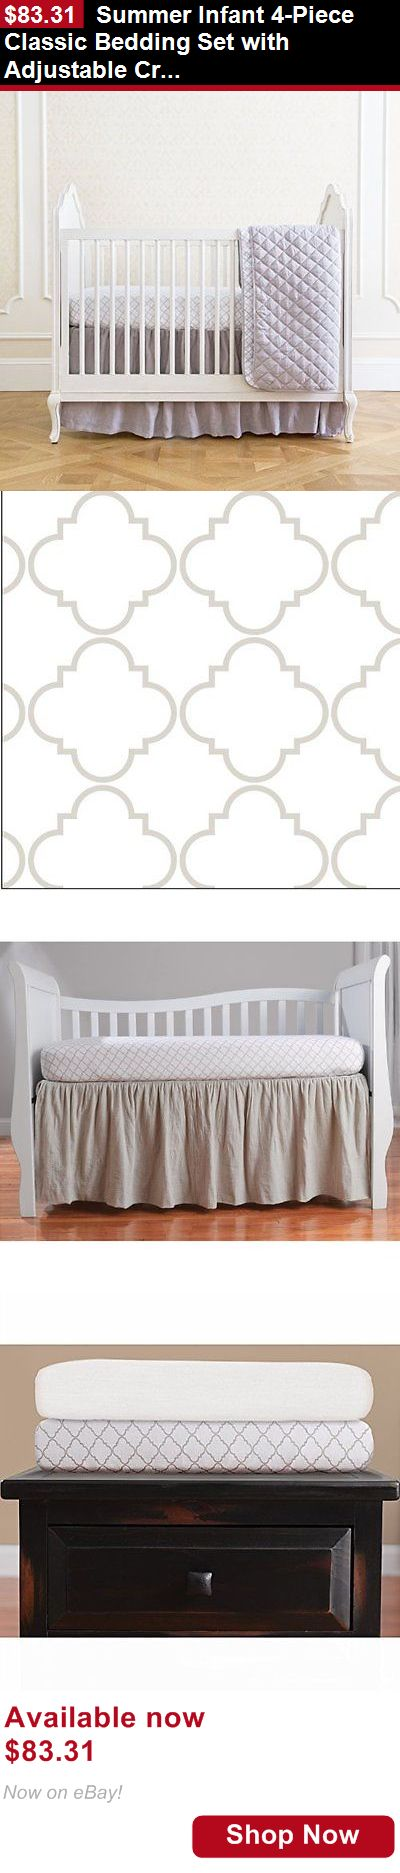 Other Nursery Bedding: Summer Infant 4-Piece Classic Bedding Set With Adjustable Crib Skirt, Medalli... BUY IT NOW ONLY: $83.31